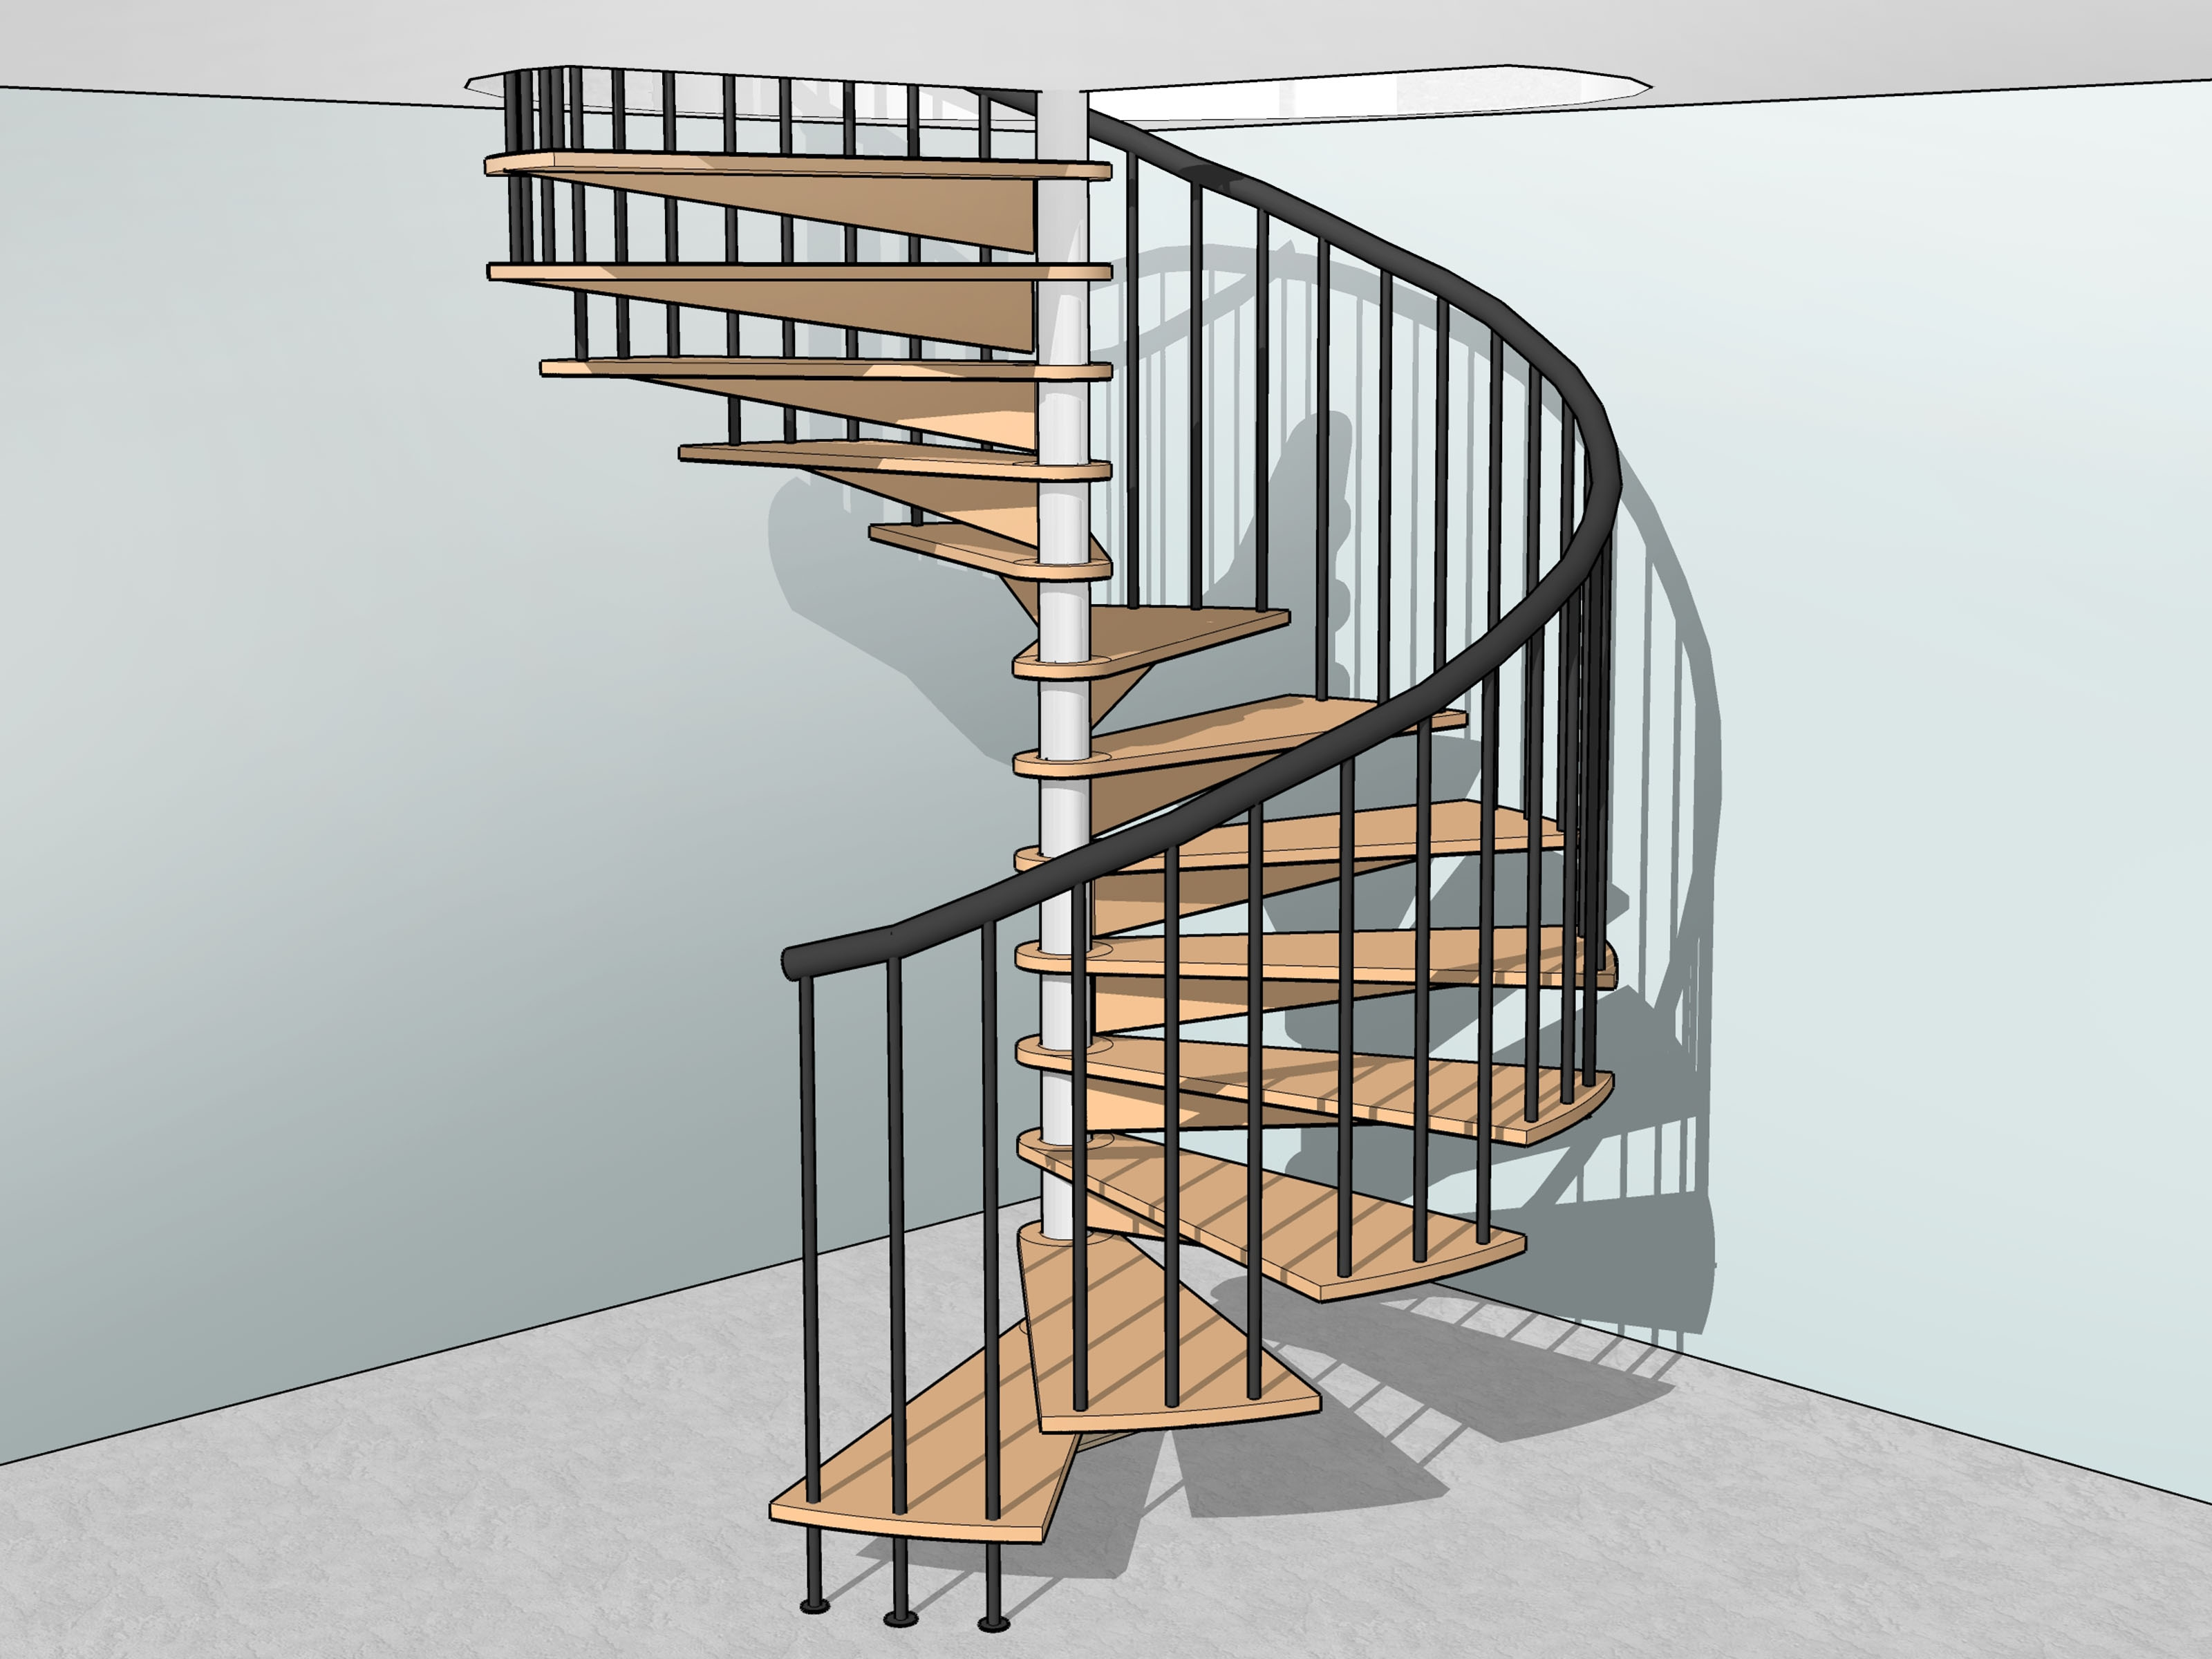 How To Build Spiral Stairs 15 Steps With Pictures Wikihow | 10 Ft Spiral Staircase | Handrail | 36 Tall | Arke Phoenix | Stair Kit | Arke Enduro